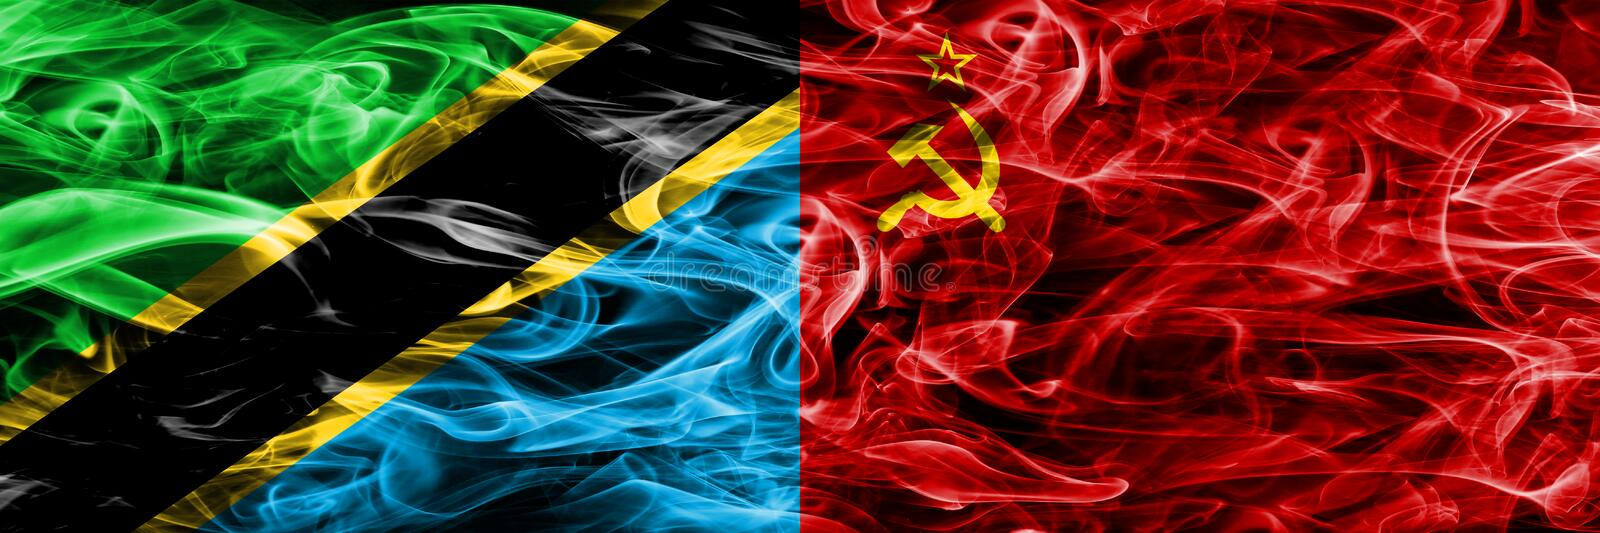 Tanzania vs USSR, Communist smoke flags placed side by side. Thick colored silky smoke flags of Tanzanian and USSR, Communist.  stock photography